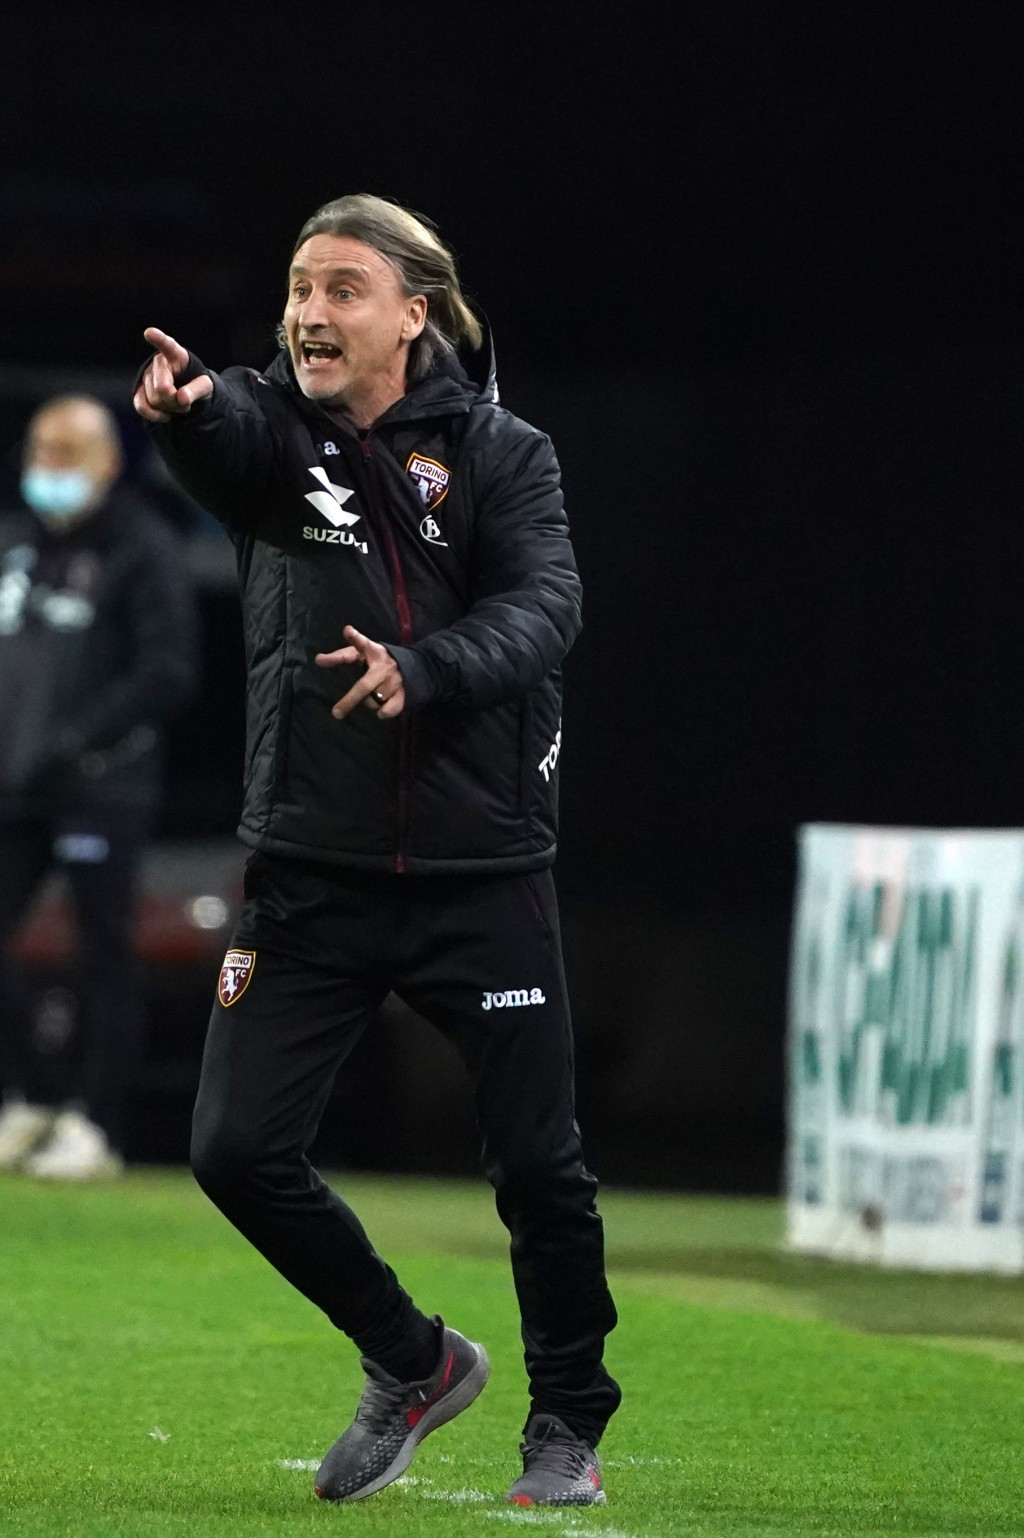 Torino manager Davide Nicola reacts on the sideline during a Serie A soccer match between Cagliari and Torino, in Cagliari's Sardegna Arena stadium, I...